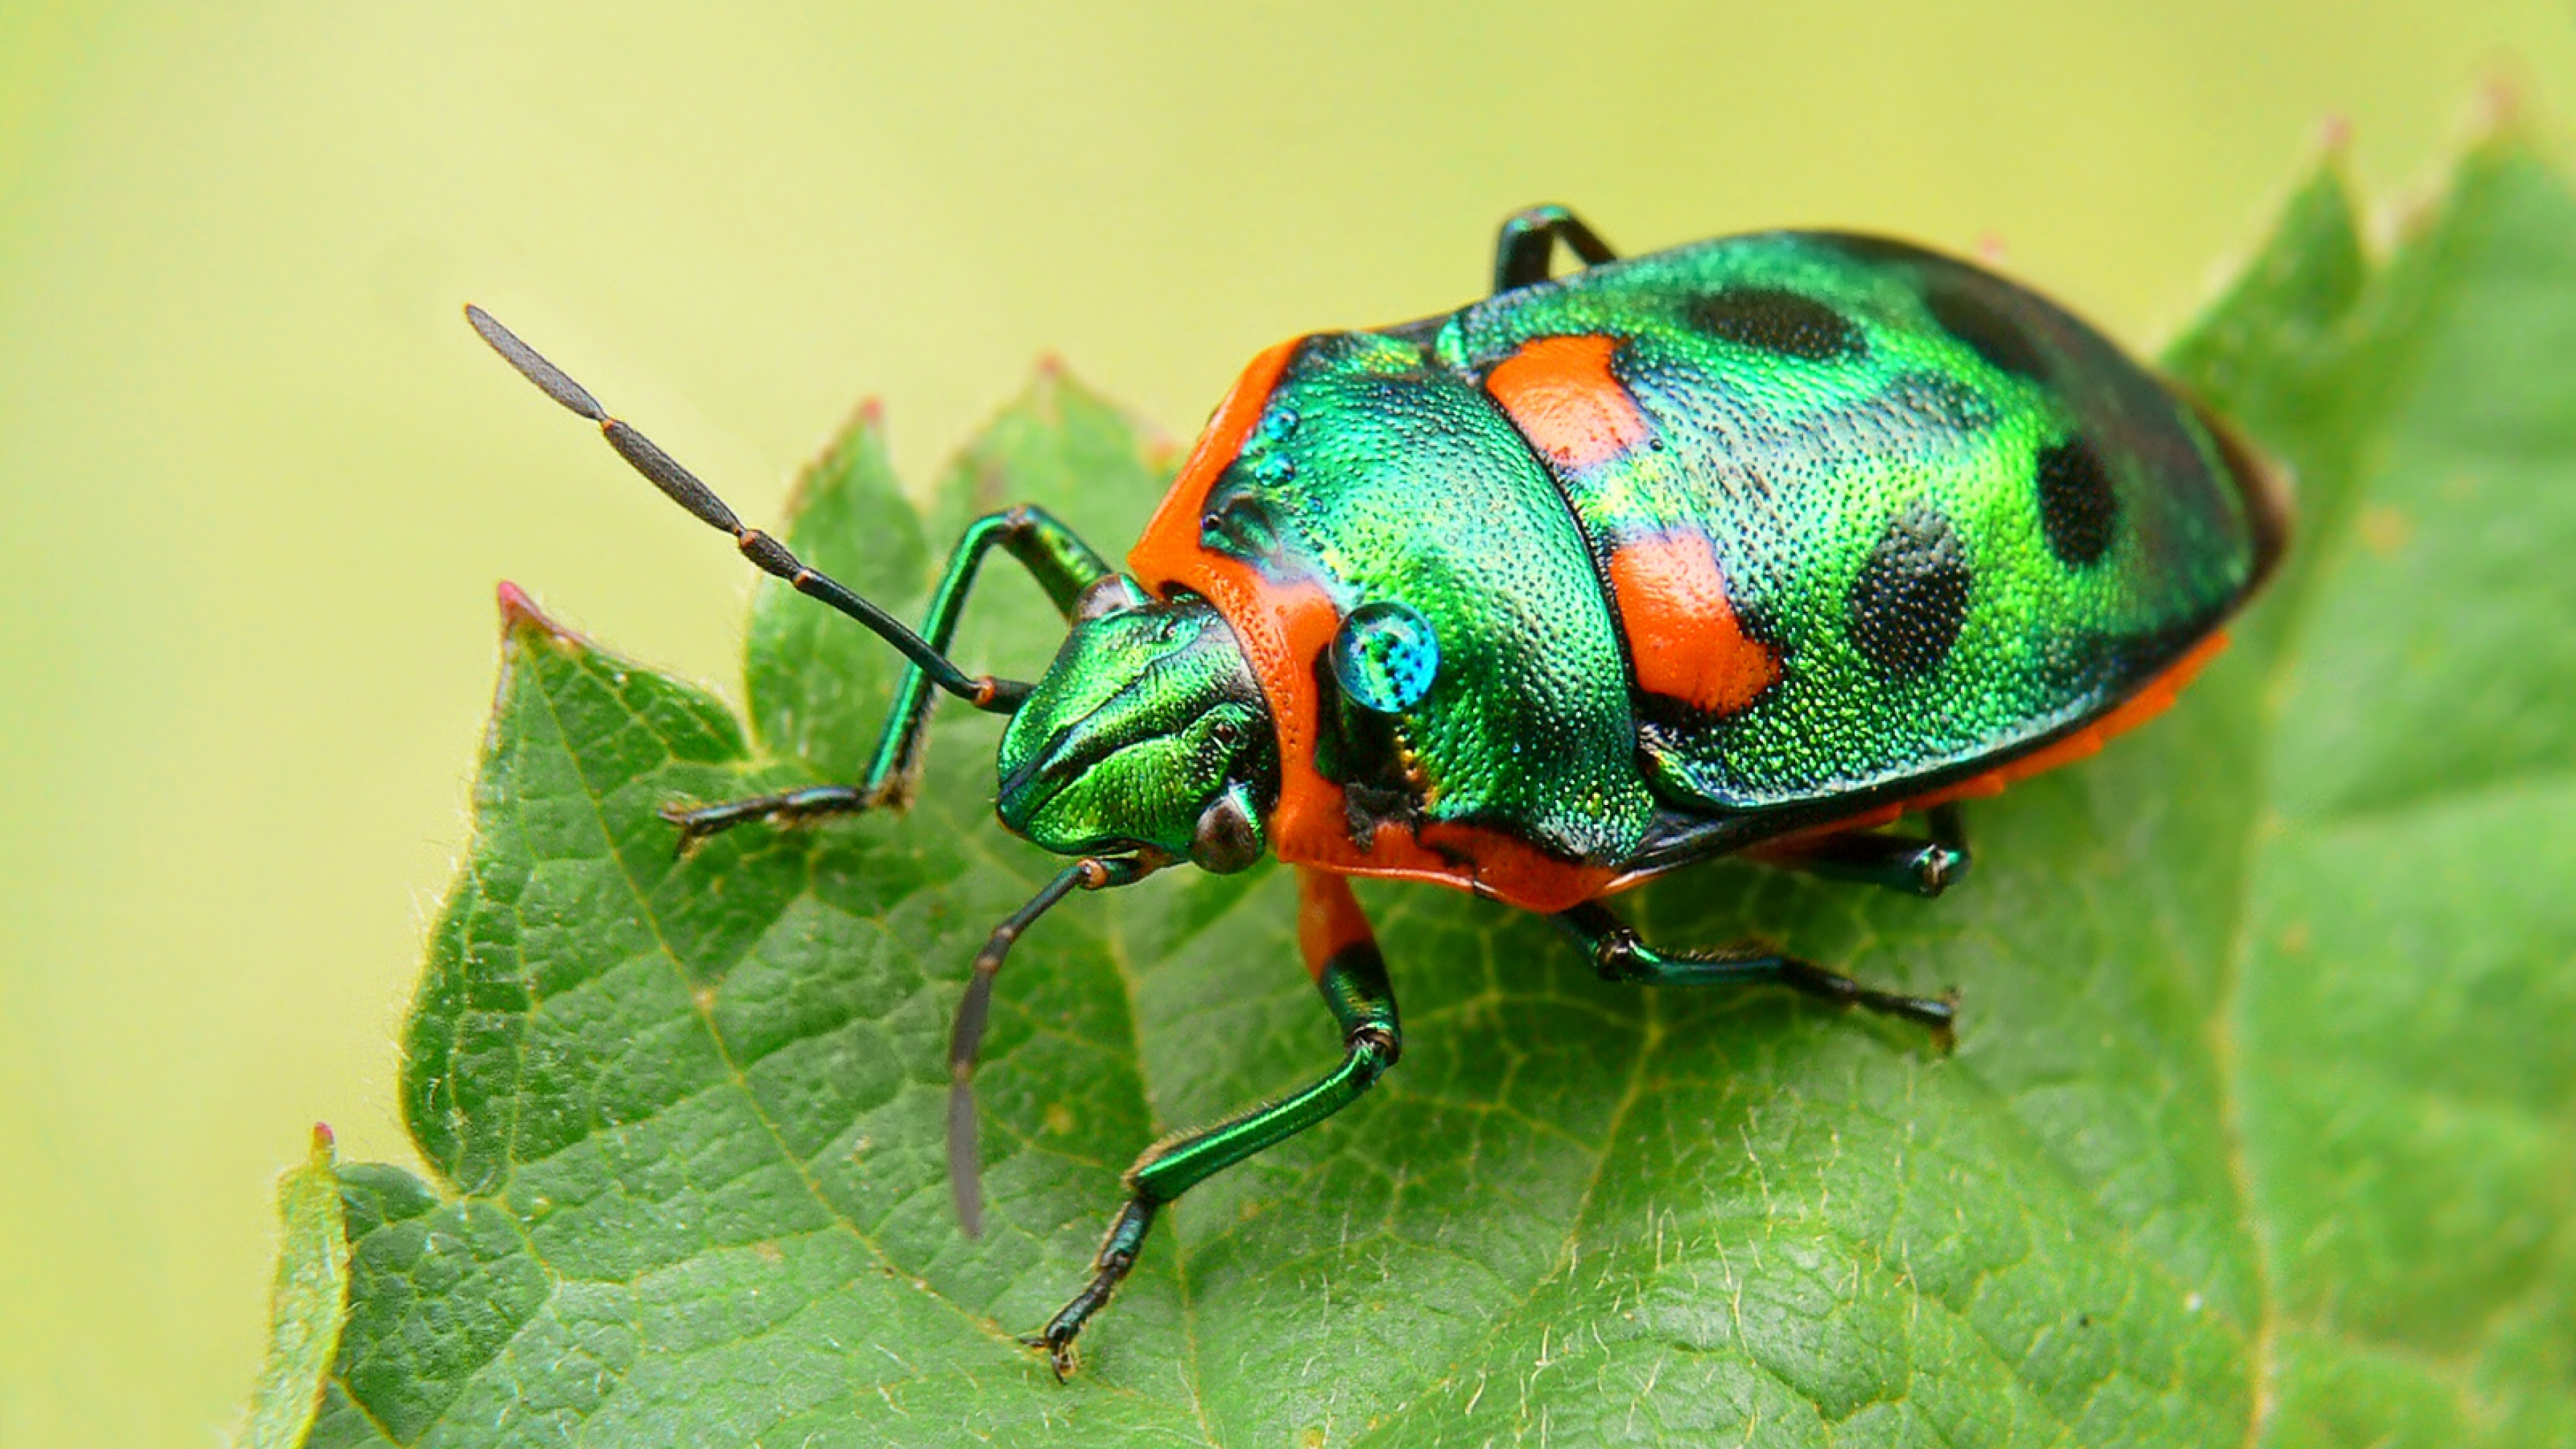 4K Insects Wallpapers High Quality   Download Free